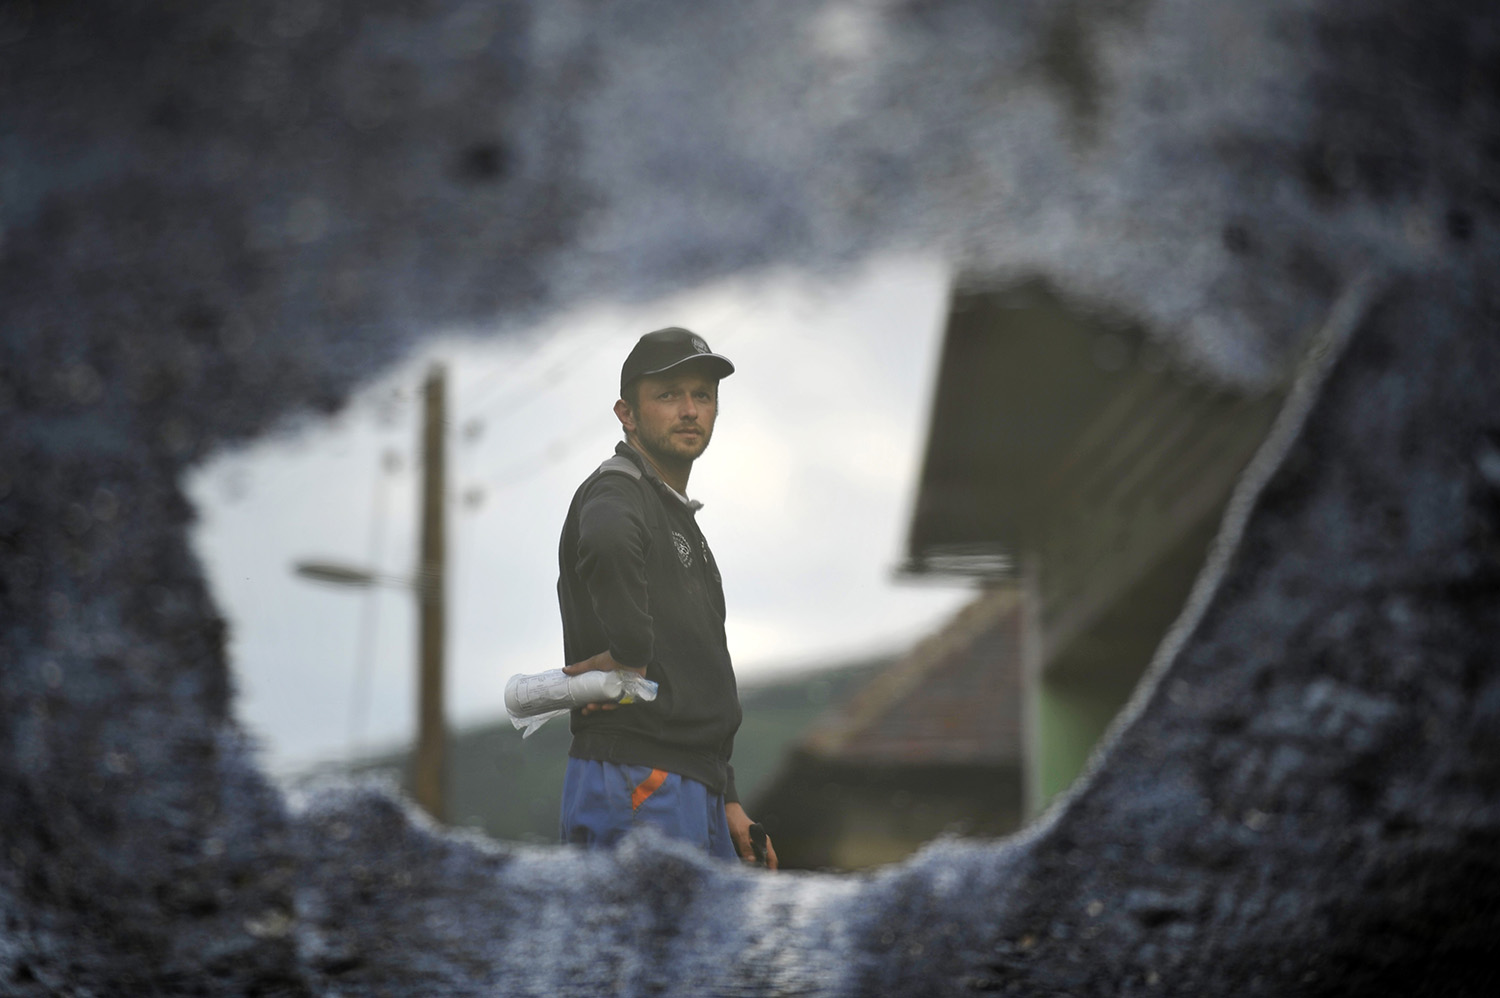 Reflection in a puddle of a man standing next to a house wich is buried in mud and rubble after a landslide at the village of Topcic Polje , near Zenica.